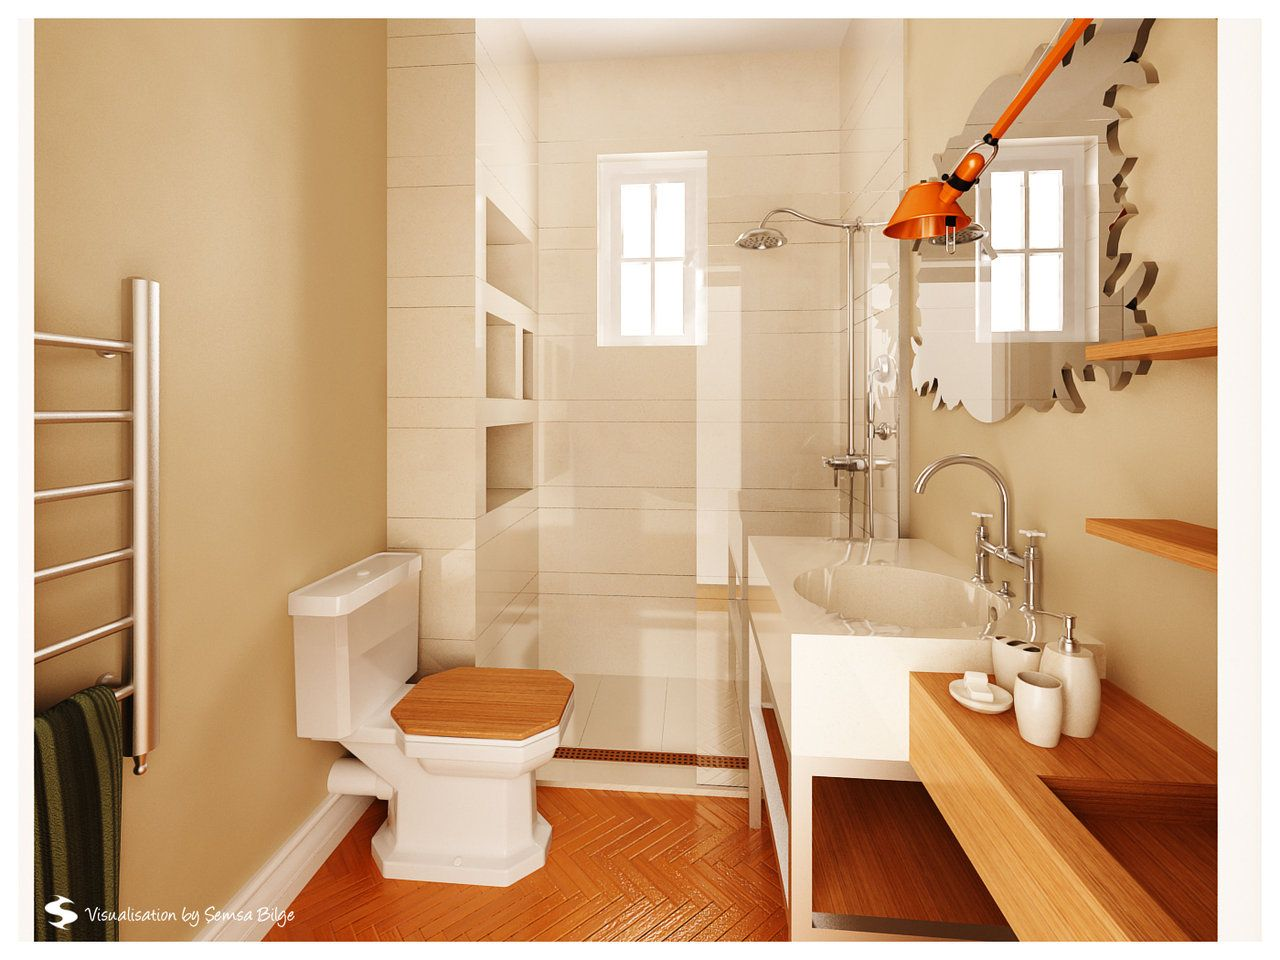 Best of Small Bathroom Remodel Ideas for Your Home | Pinterest ...